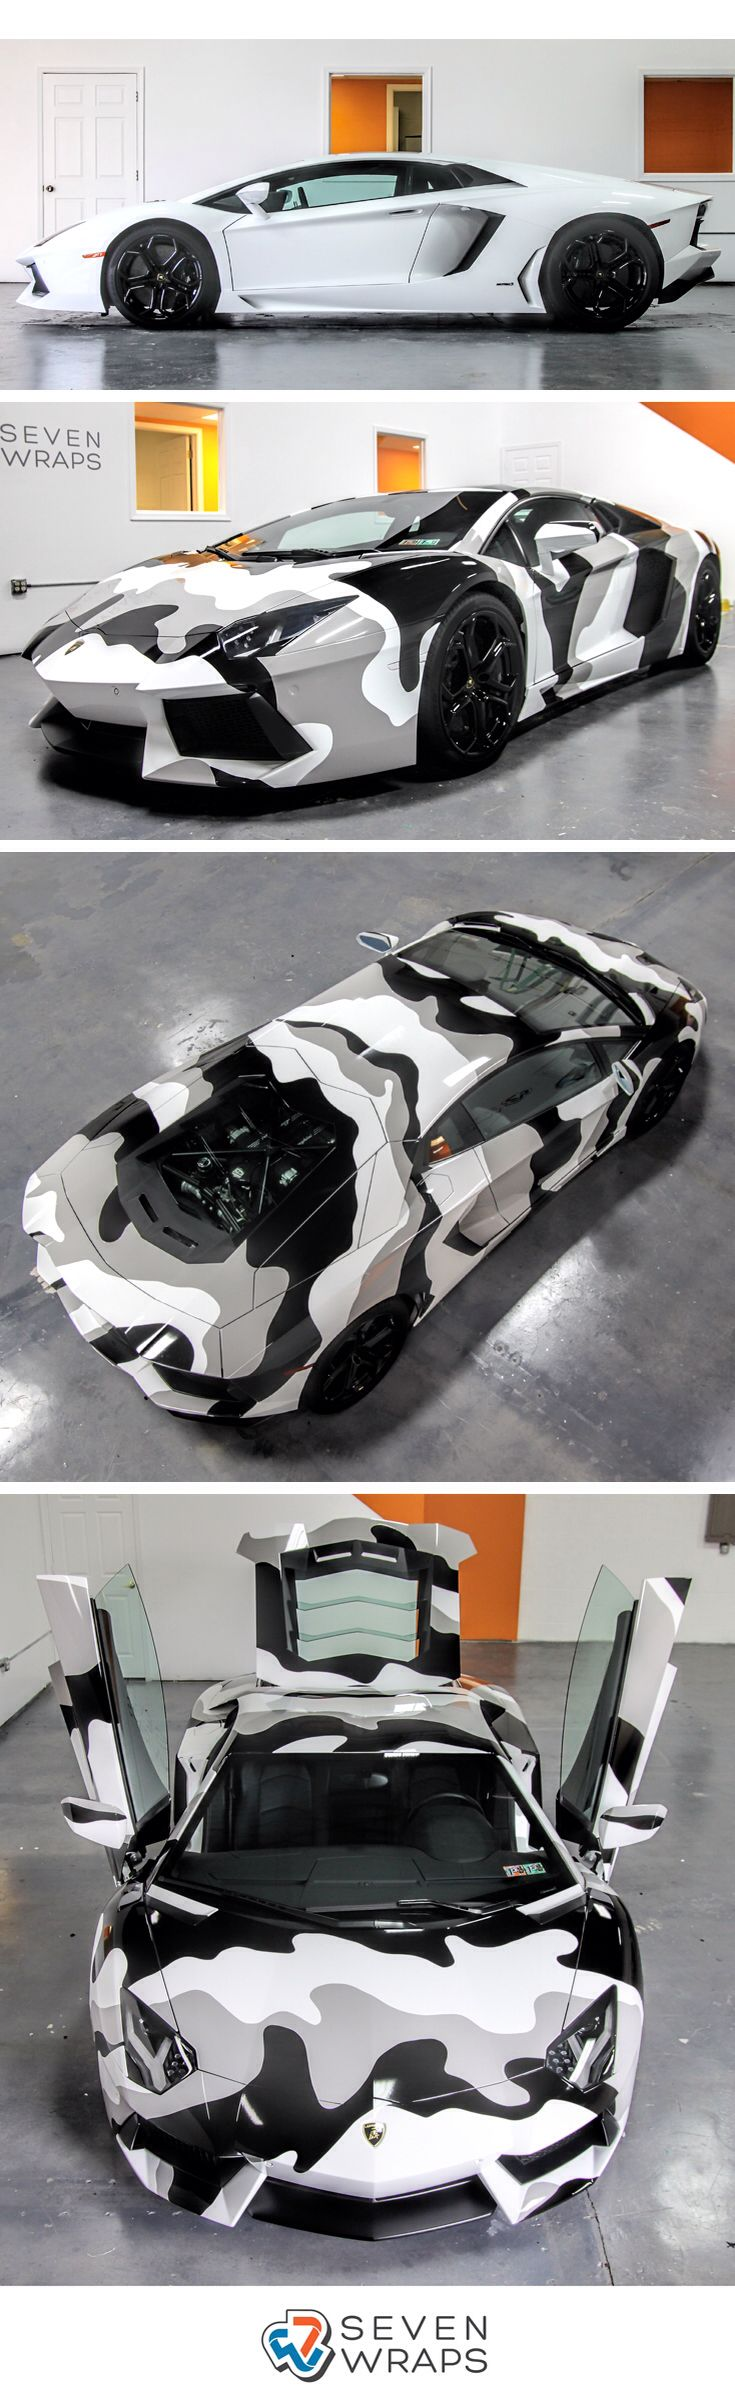 Lamborghini Aventador camo wrap by Seven Wraps wrapped with Avery Dennison Supreme Wrapping Film gloss grey and gloss black.